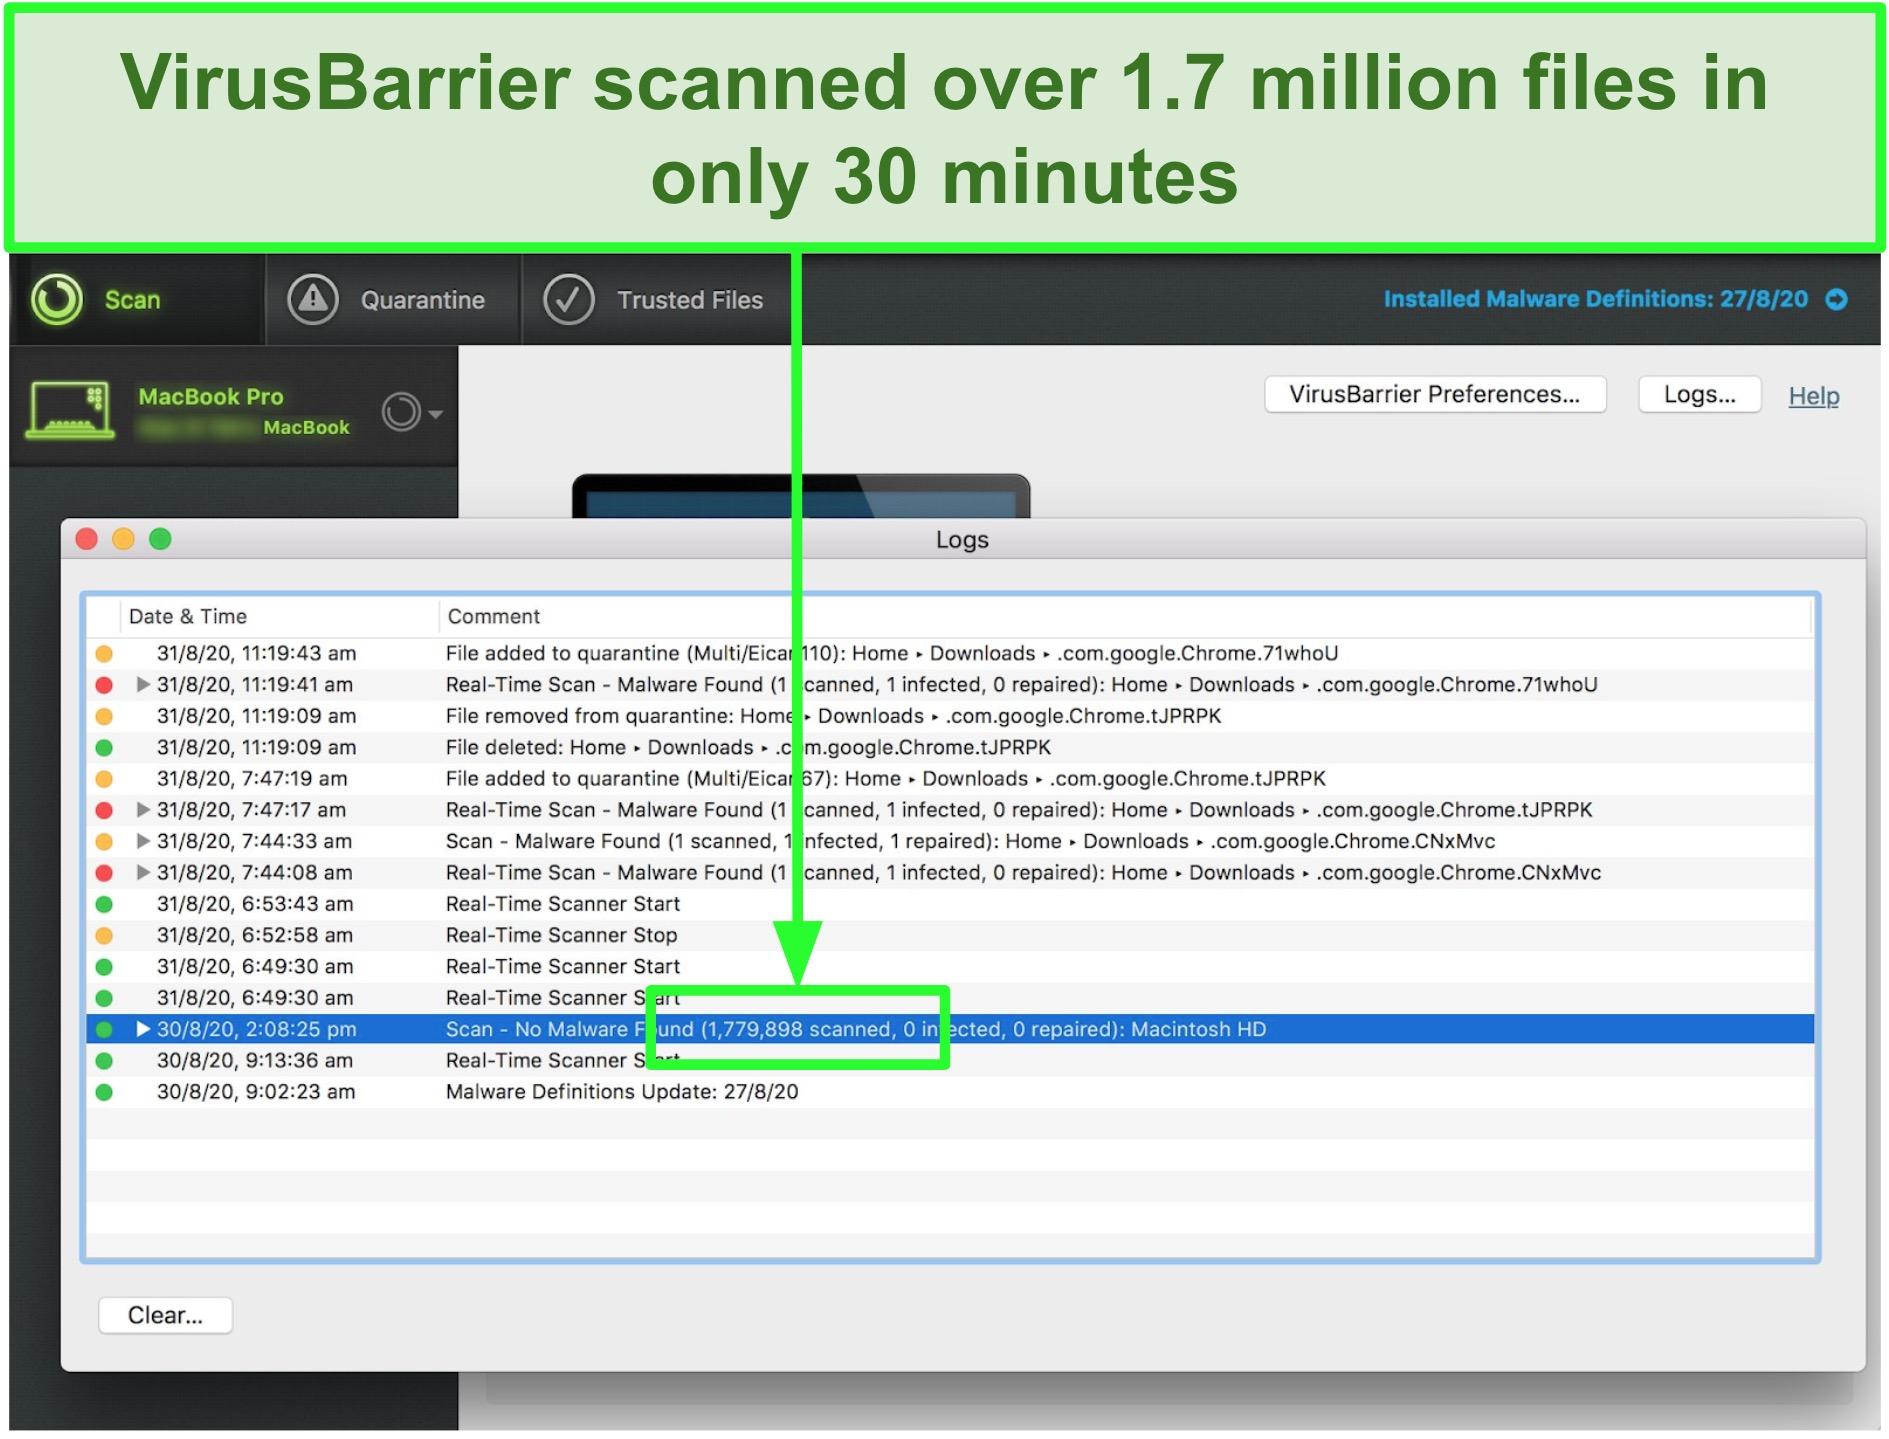 Screenshot of Intego virus scan logs showing it scanned 1.7 million files in 30 minutes